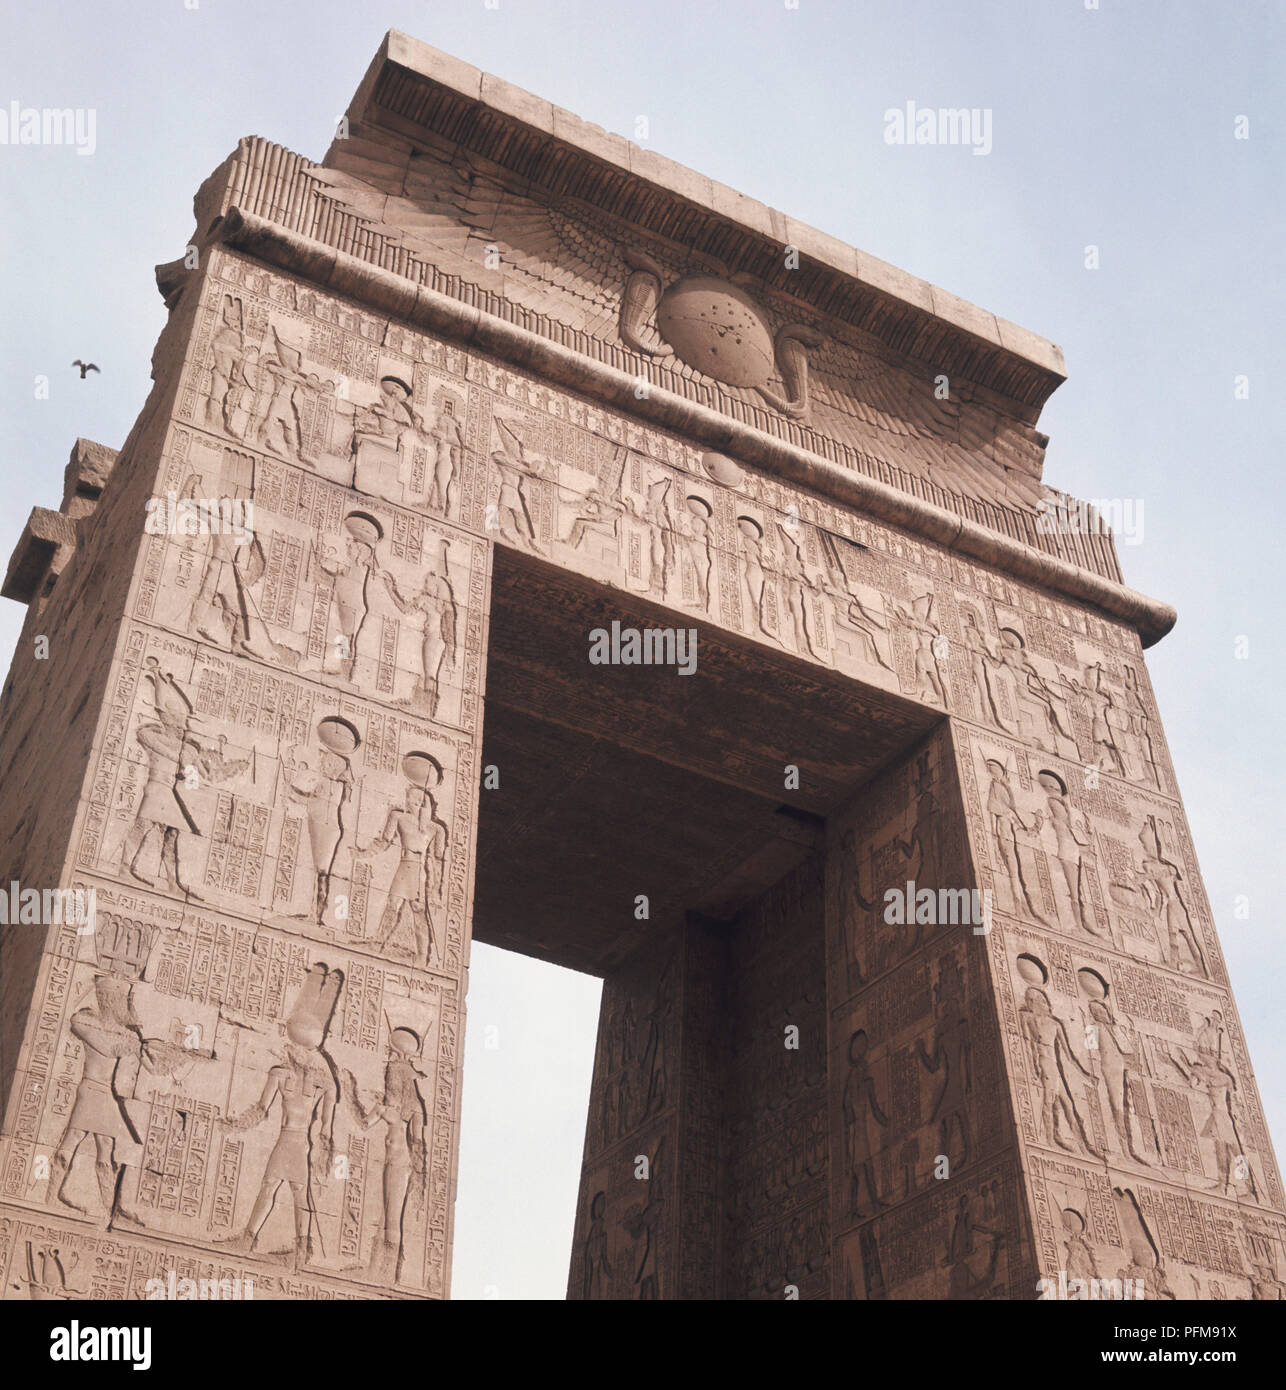 Egypt, Temple of Karnak complex, ornately carved Ptolemaic gateway of the 10th pylon, many hieroglyphic depictions. - Stock Image